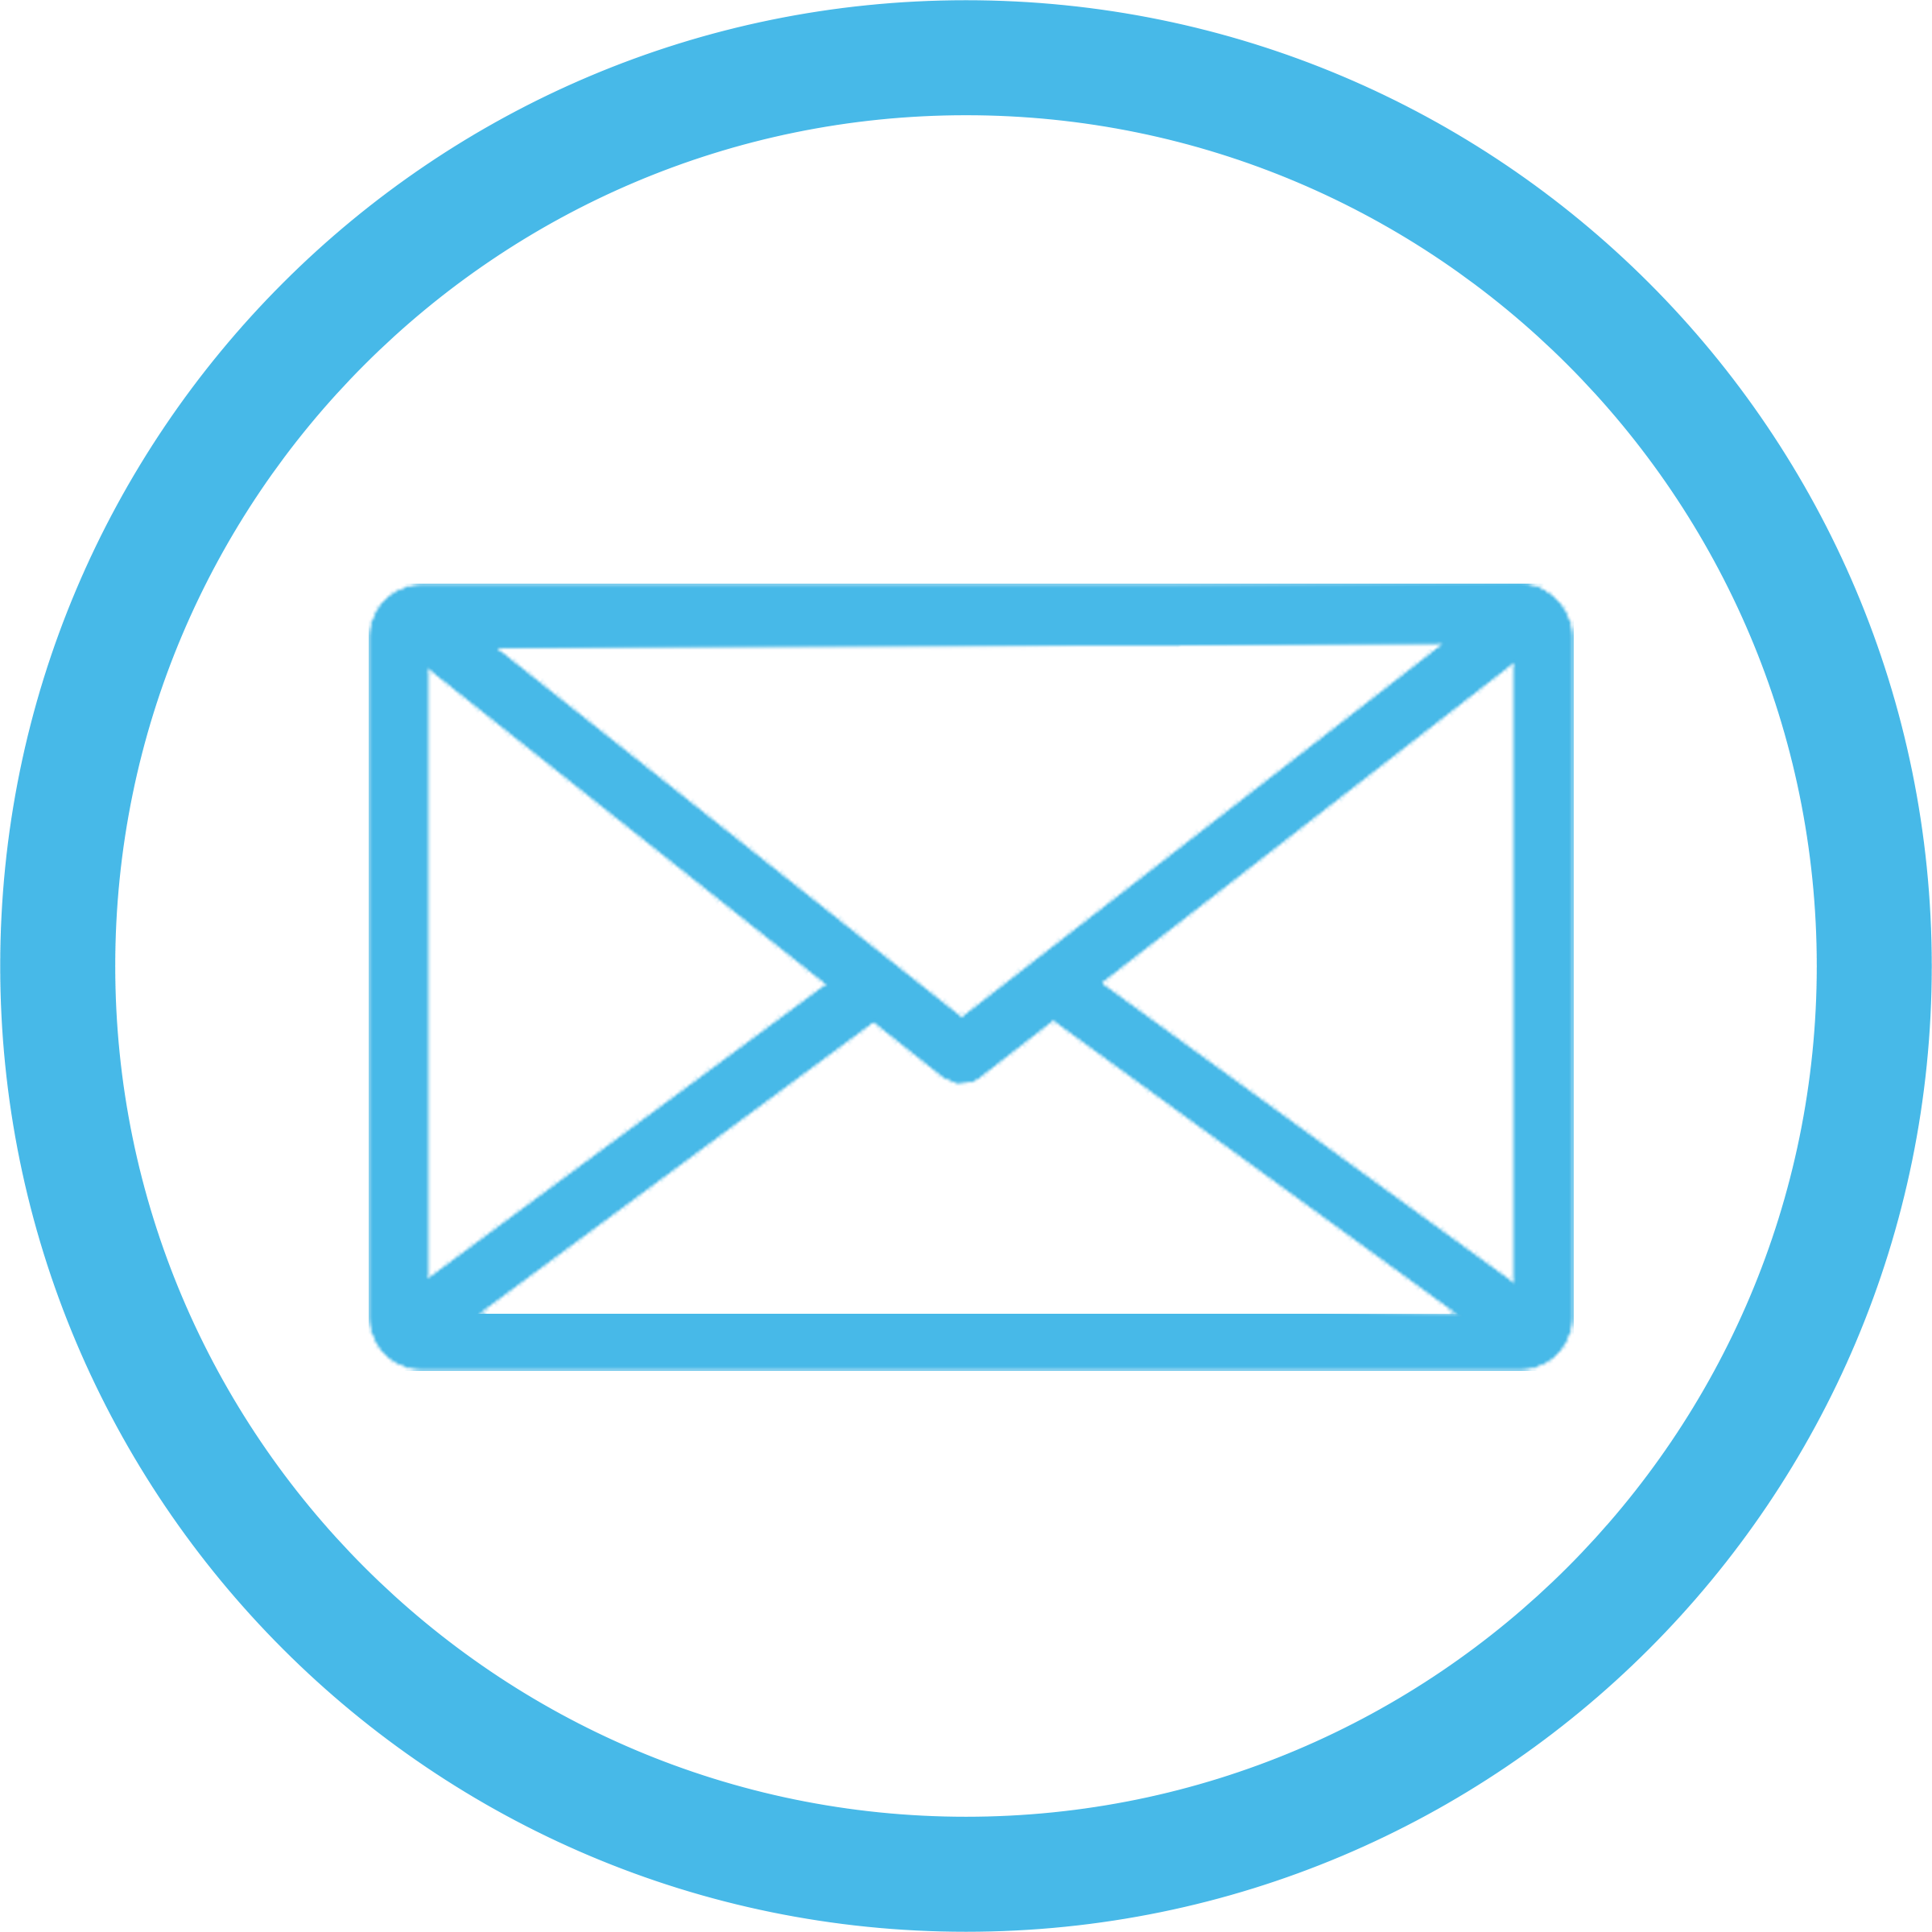 image library download Email transparent. Icon blue png stickpng